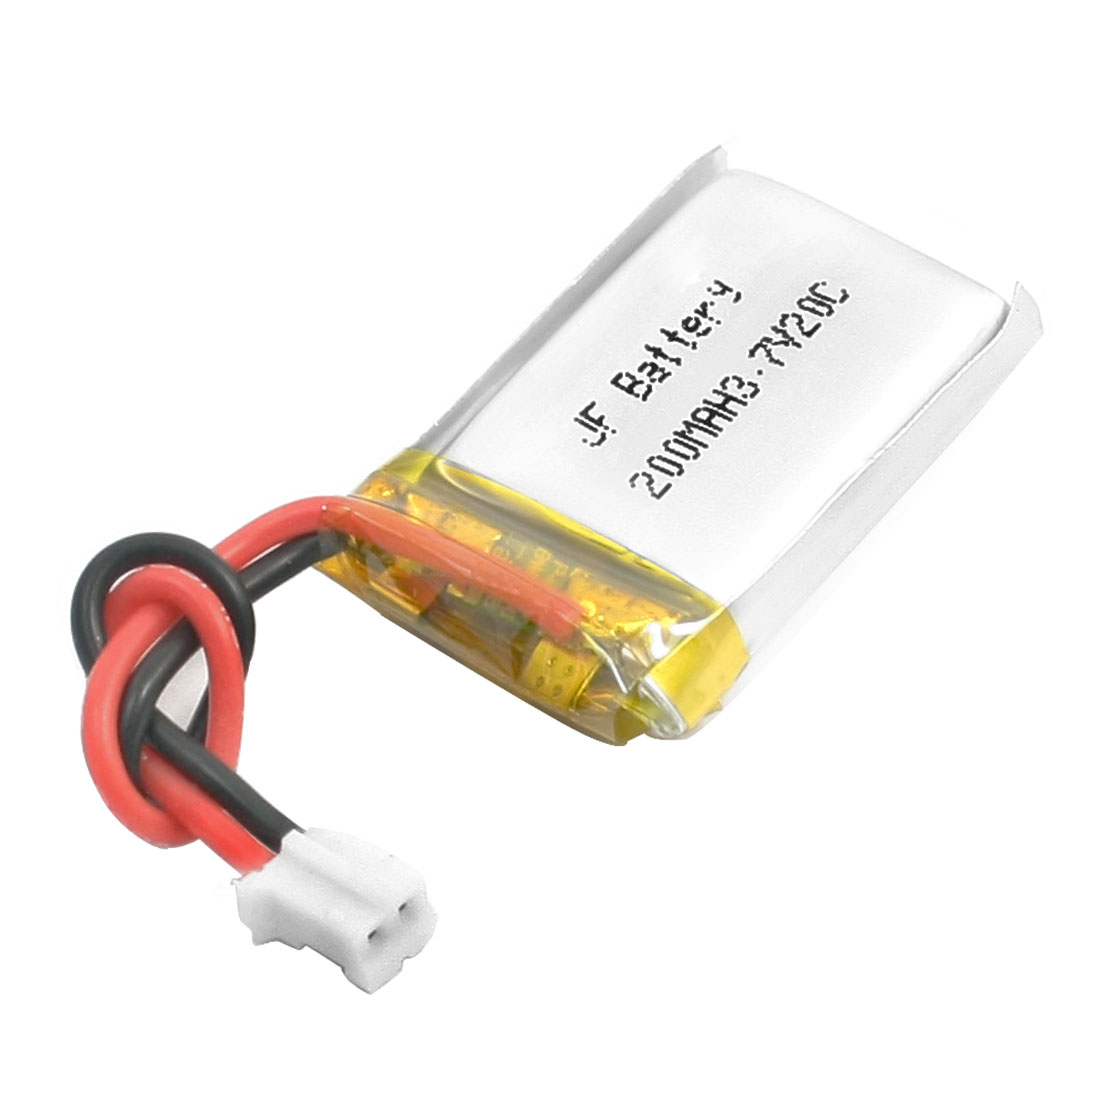 3.7V 200mAh 20C 1S 4A Li-po Rechargeable Battery PHR 2Pin Connector